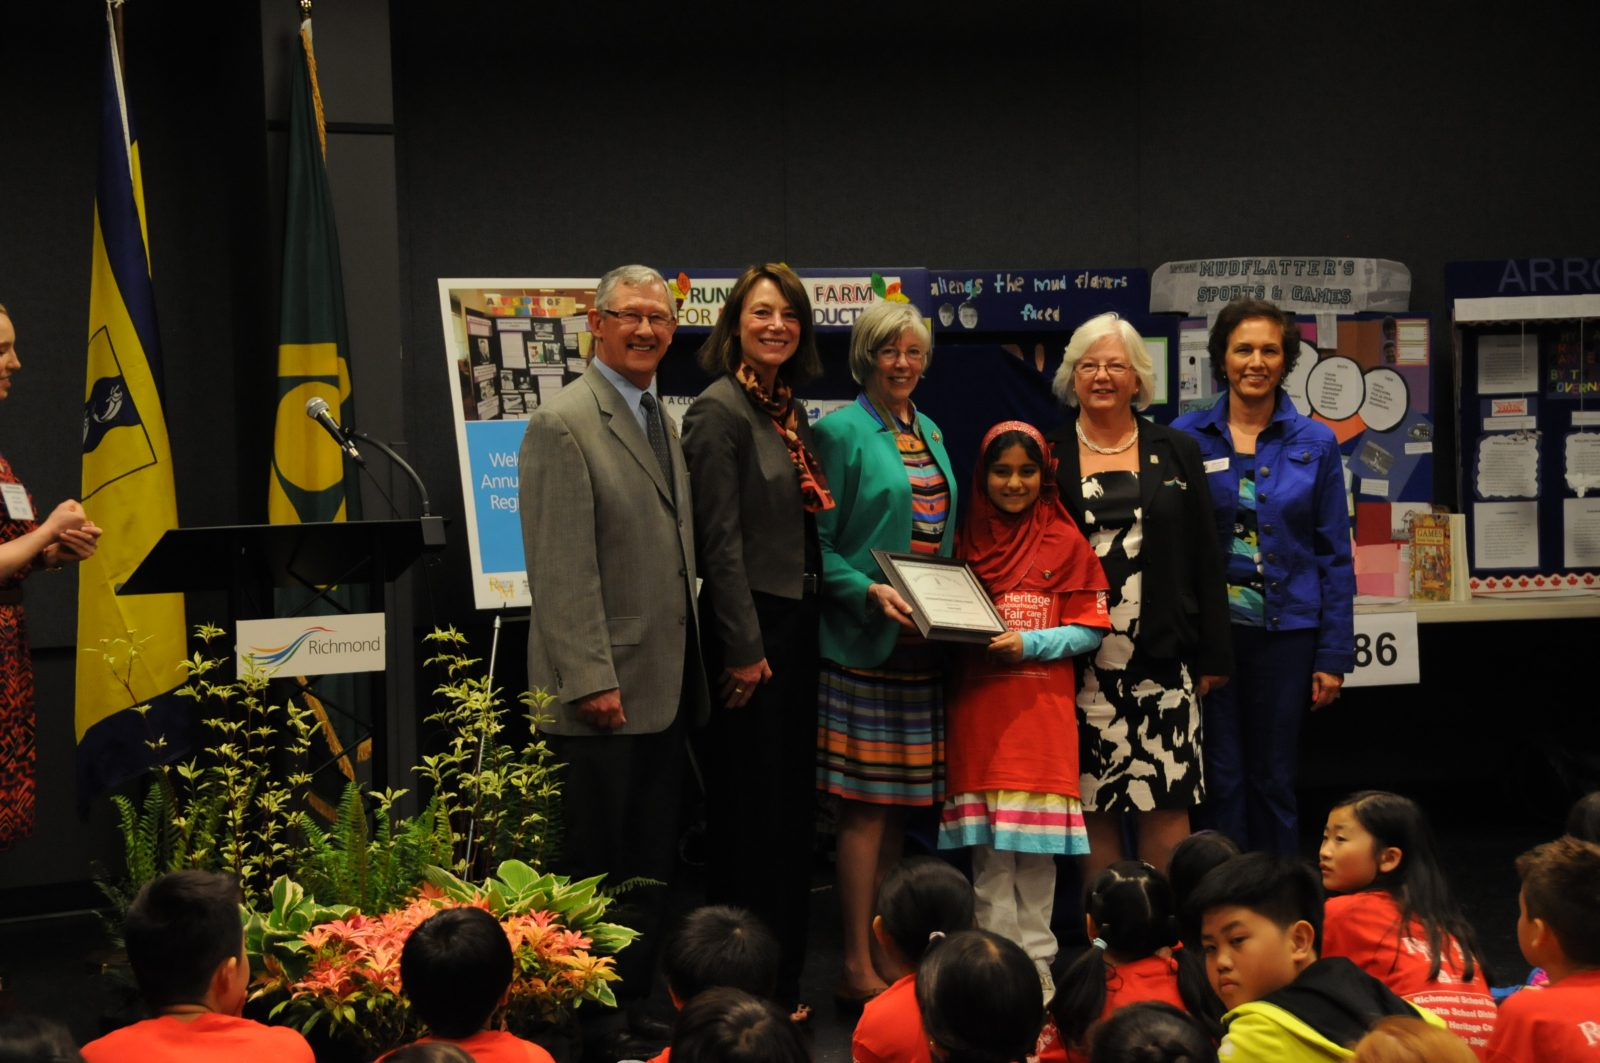 Richmond Councillor Bill McNulty, Delta's Acting Mayor Jeannie Kanakos, The Honourable Judith Guichon, Dania Rashid (Gr. 5, from Gibson Elementary in Delta), Richmond's Acting Mayor Linda Barnes and Richmond Councillor Linda McPhail.